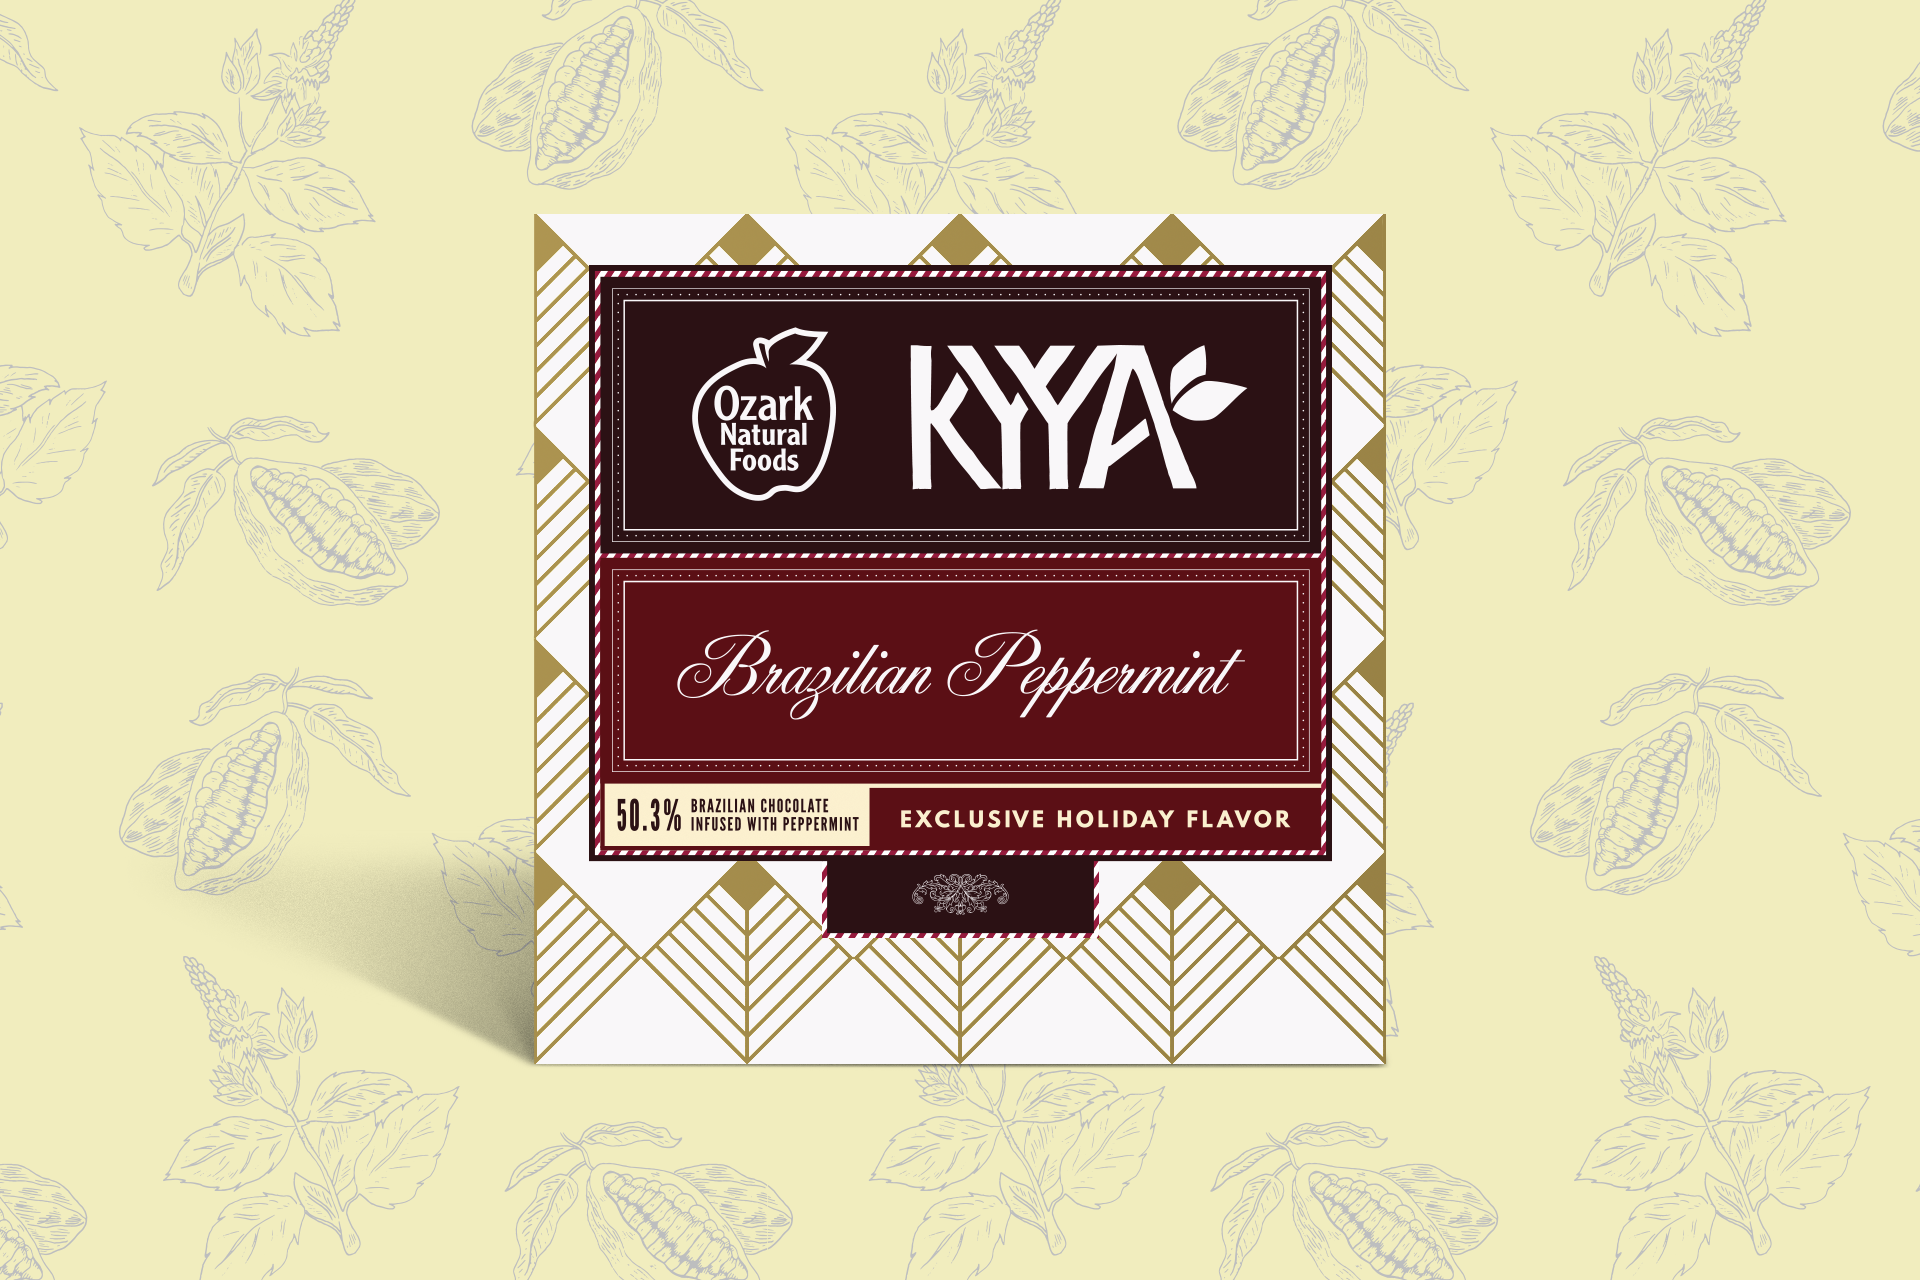 Ozark Natural Foods / Kyya Chocolate